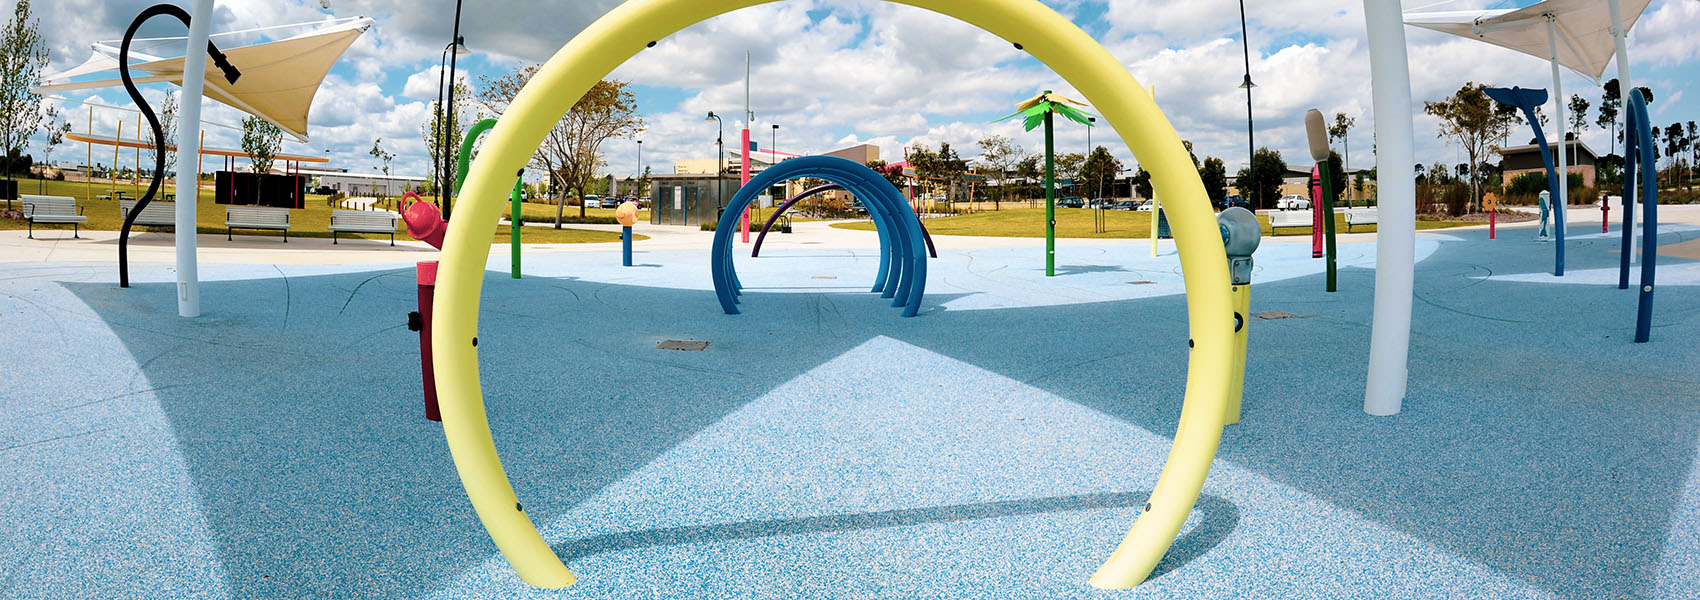 Move Homes has house and land packages close to Rainbow Waters park in Ellenbrook